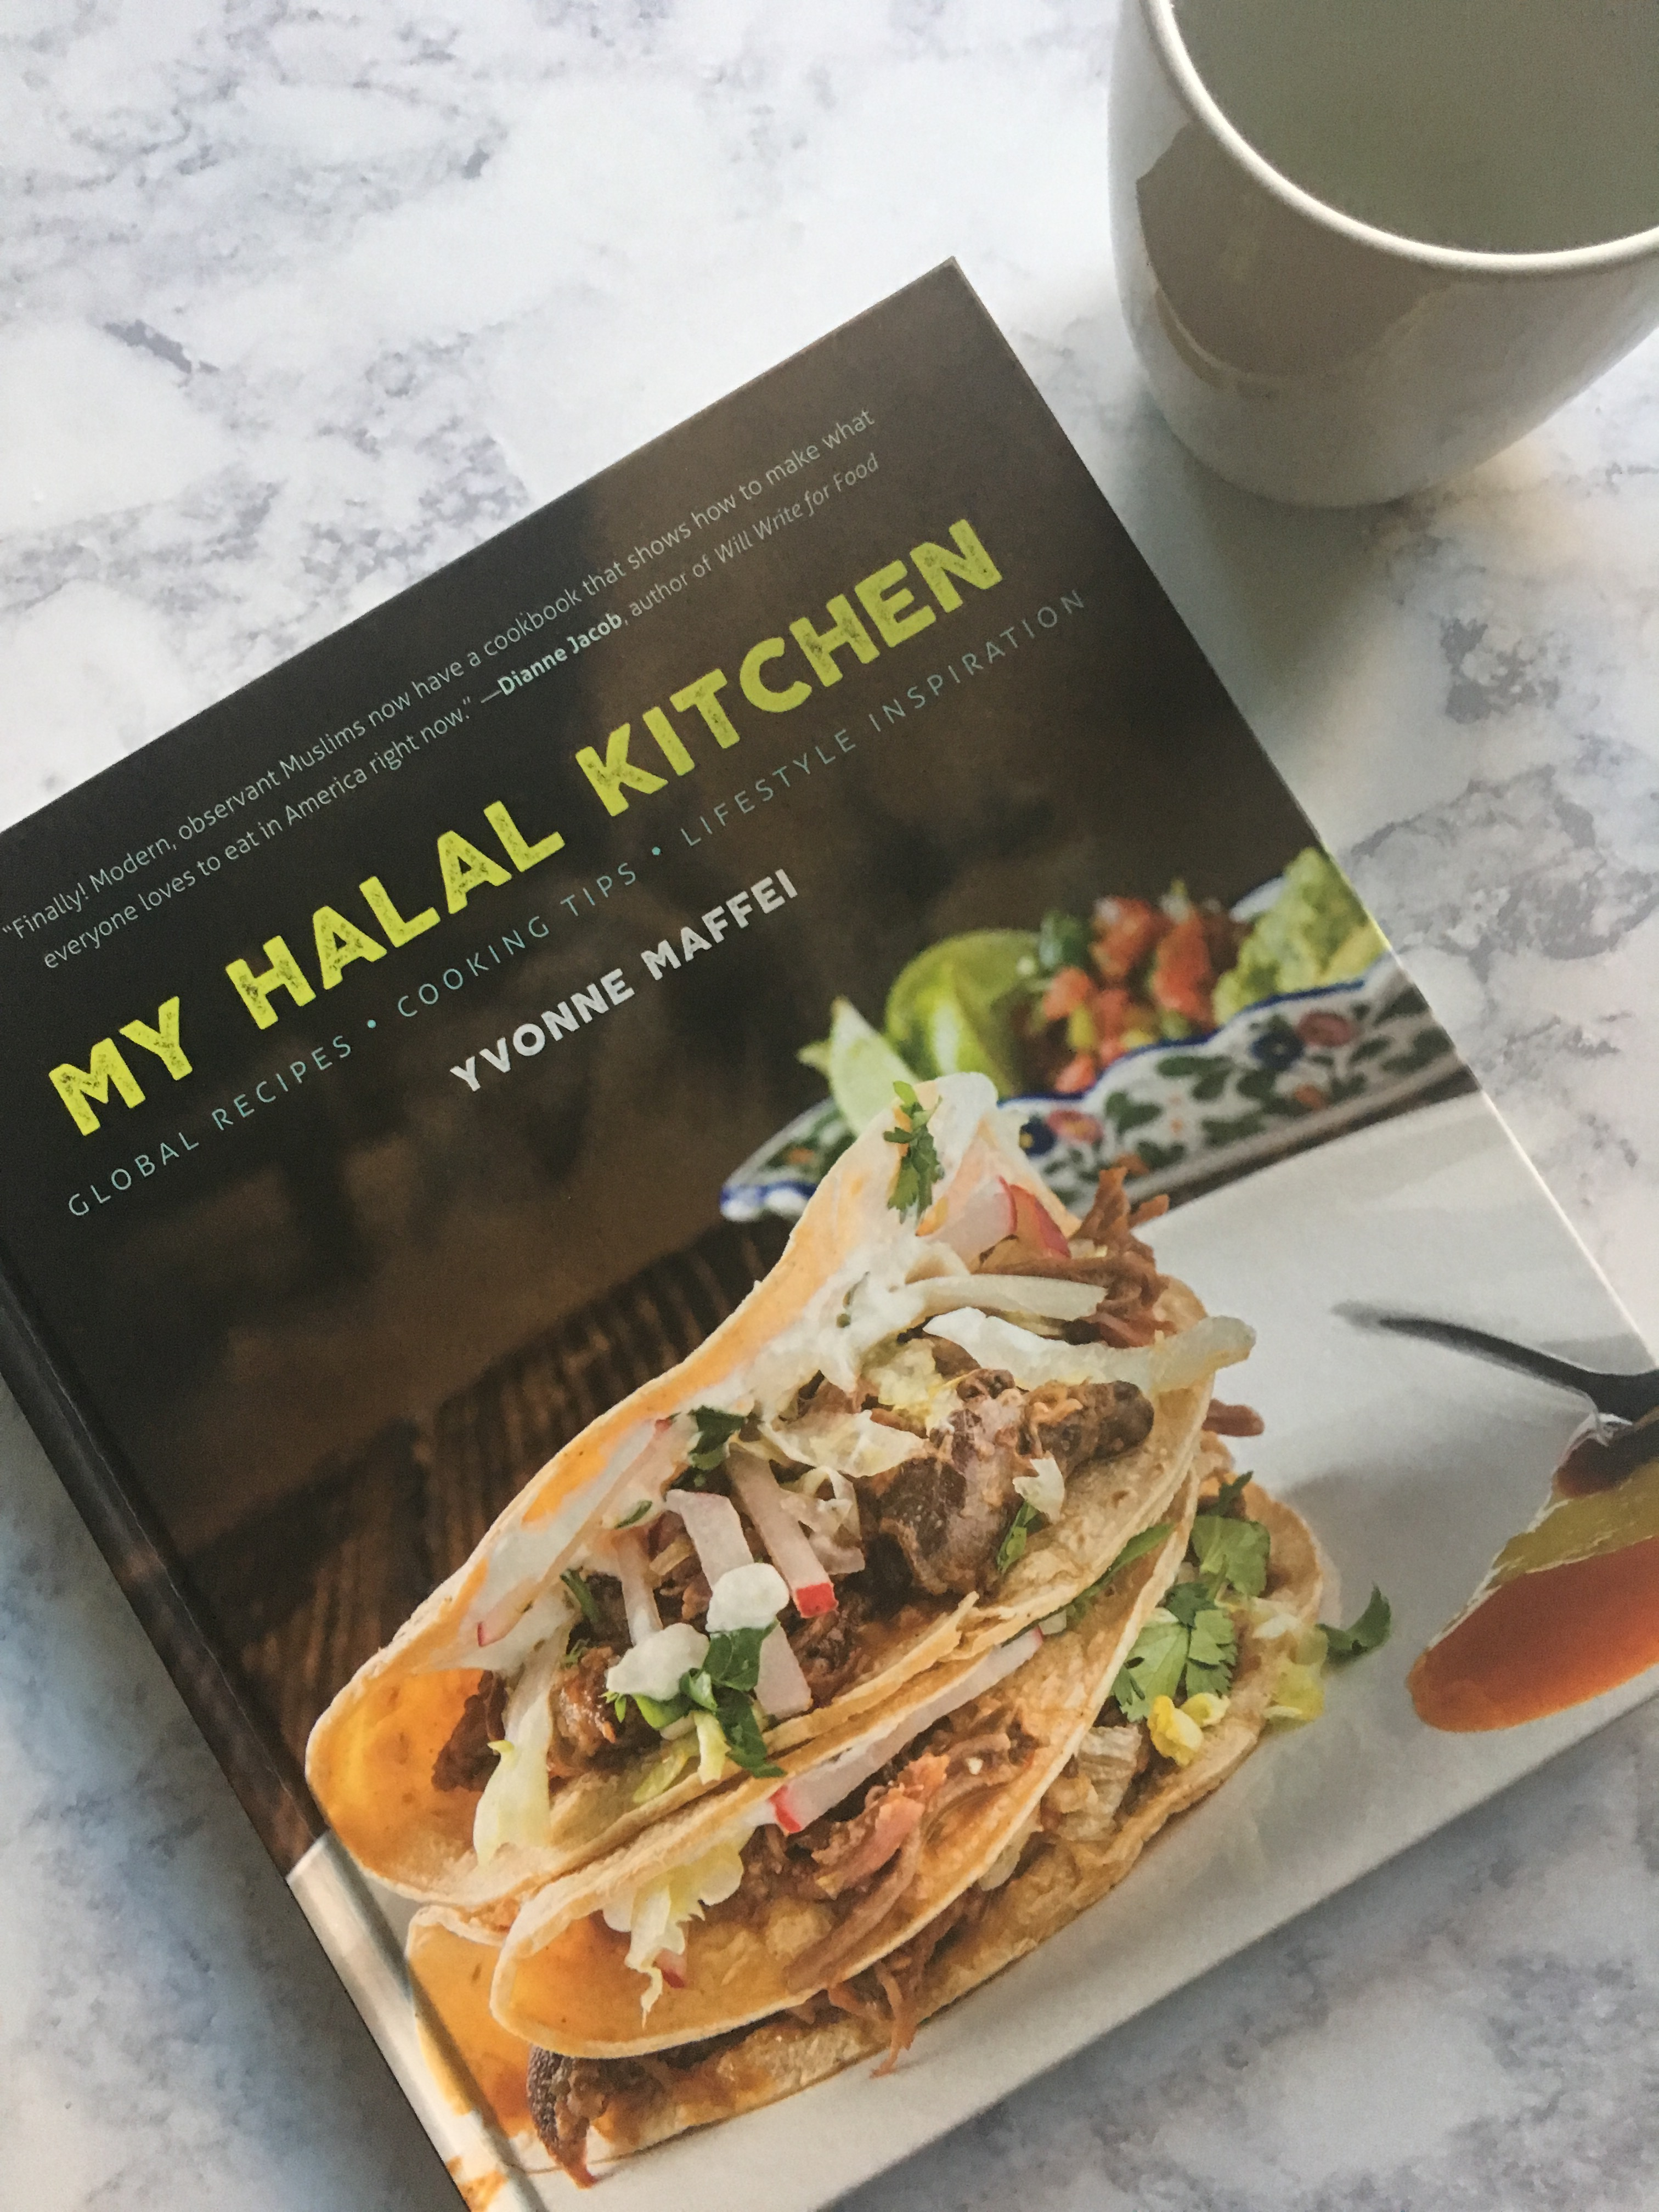 What's Really in our Food – A Presentation by My Halal Kitchen's Yvonne Maffei